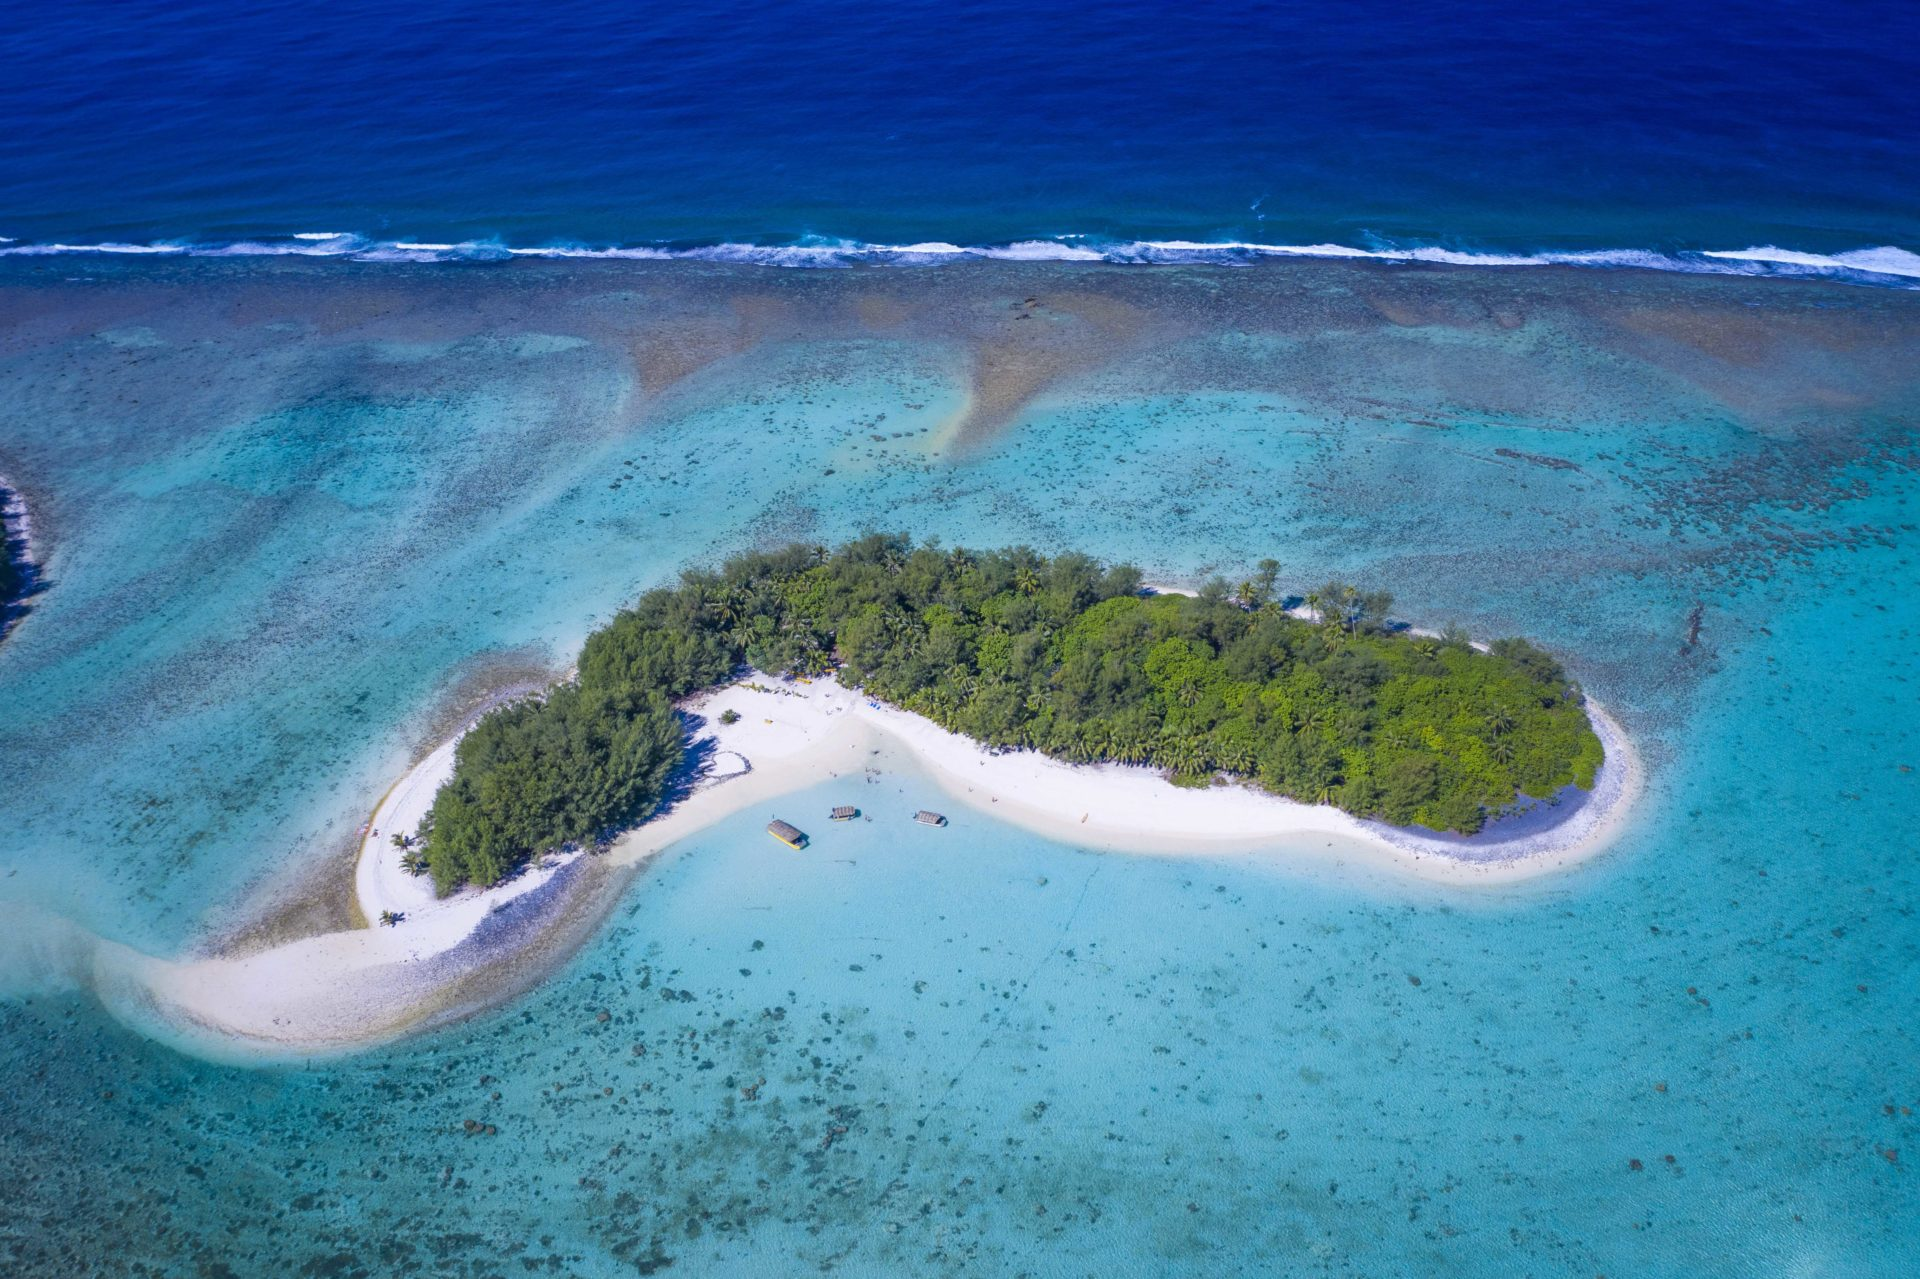 A spectacular aerial image of Motu Koromiri, a secluded private island set amidst the clear blue lagoon showcasing the splashing of waves towards the outer reef